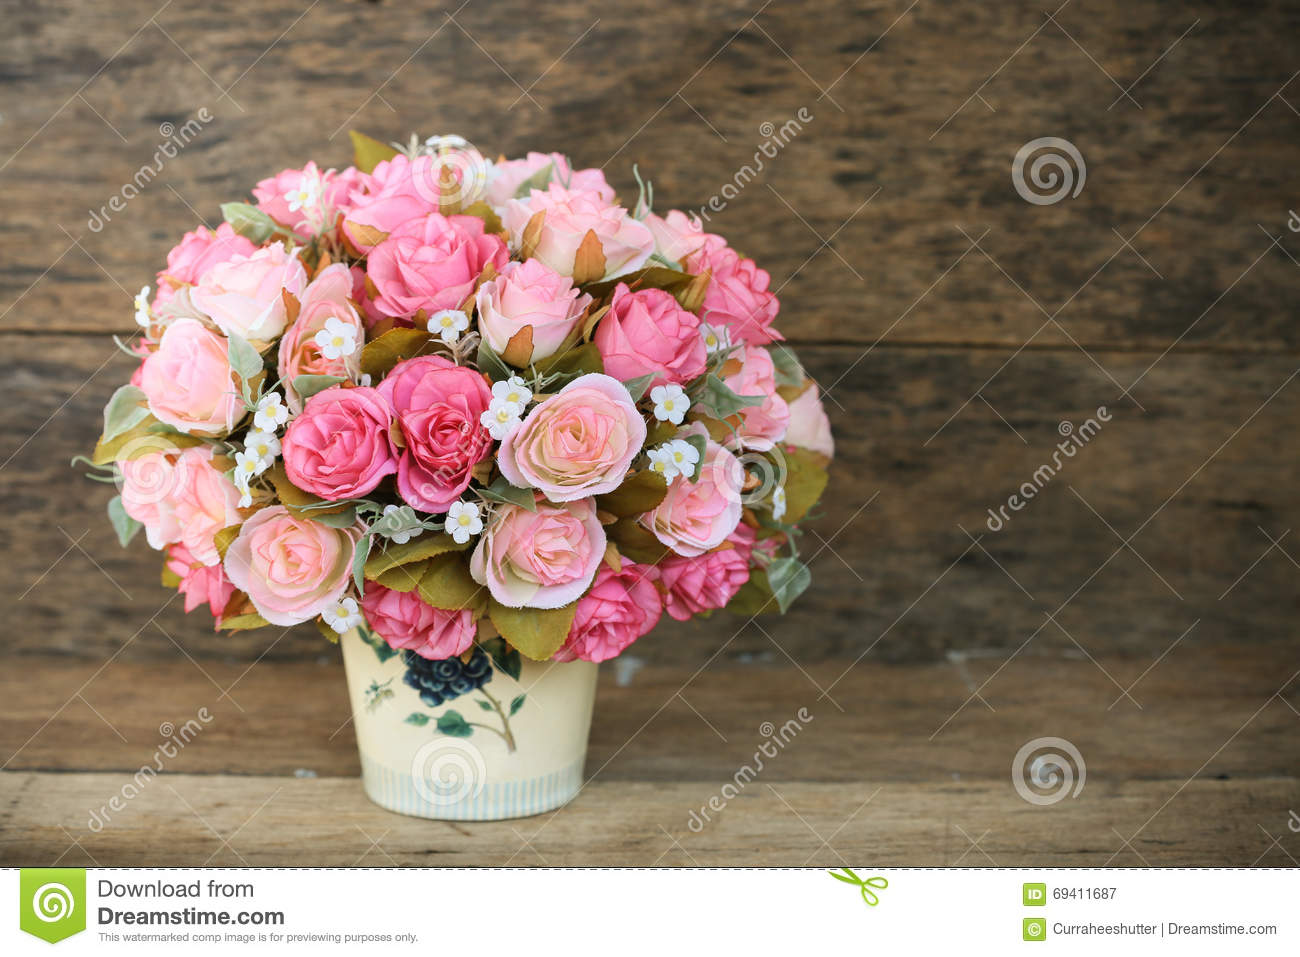 Plastic flowers with wooden background in vintage picture style, home interior equipment, Flowers set on wooden background